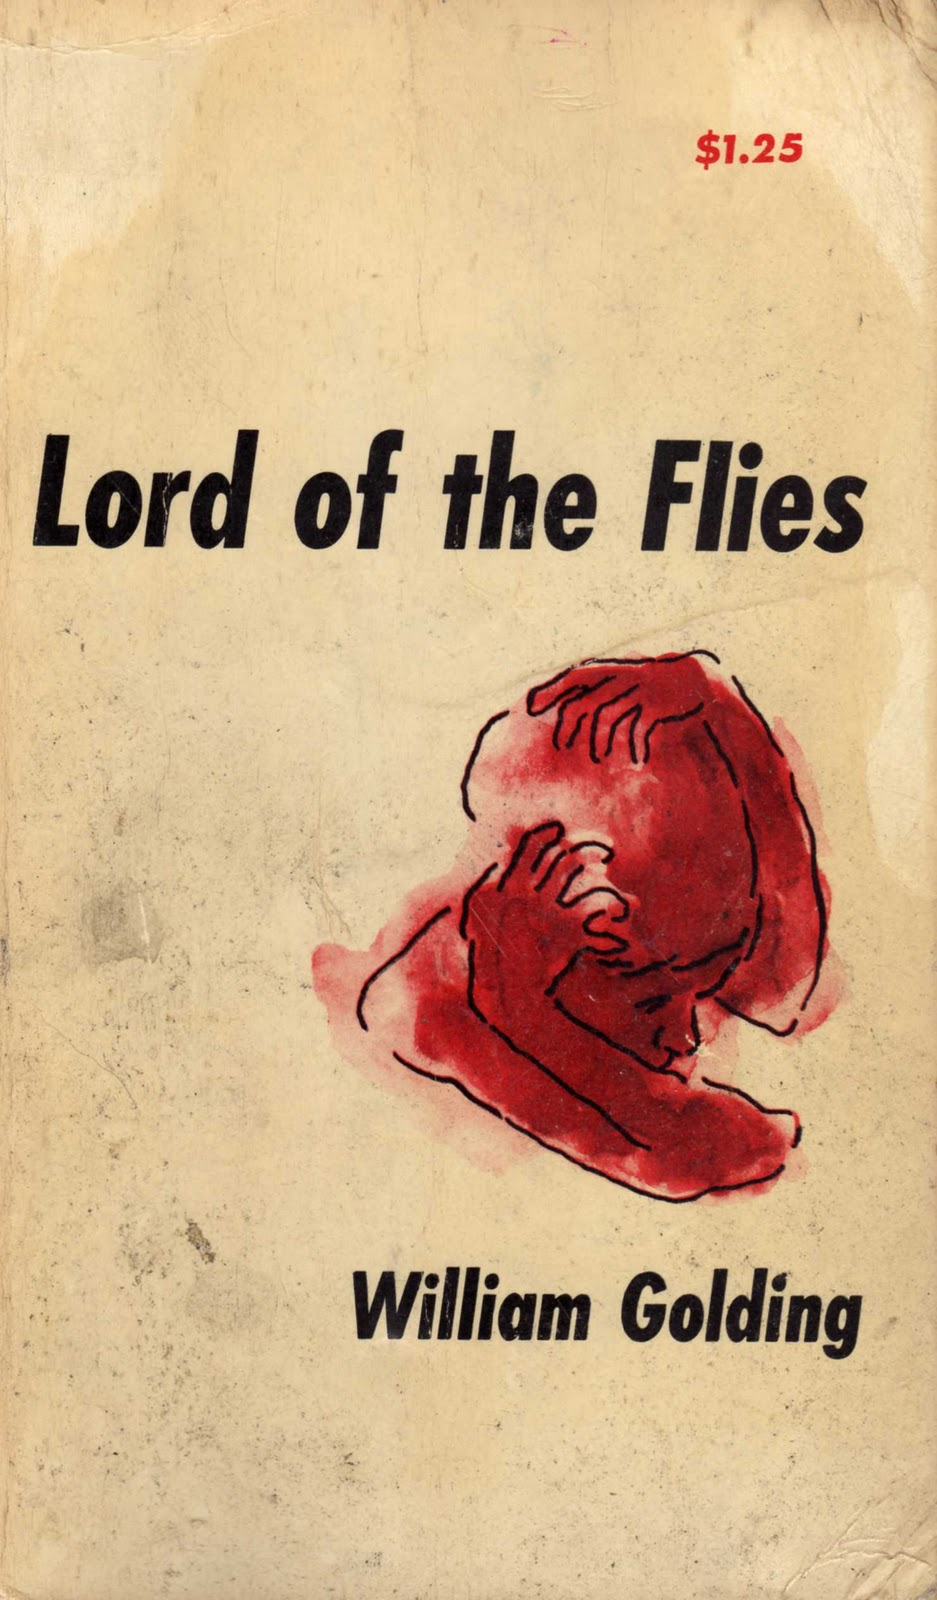 """an analysis of the concept of evil in the novel lord of the flies by william golding """"lord of the flies"""", literary analysis of the novel by william golding philosophical novel-parable """"lord of the flies"""" by william golding has first seen the light of day in 1954 at first, many publishers did not want to accept the manuscript by an unknown author, but, after the novel had been printed, it immediately caught the attention of readers and."""